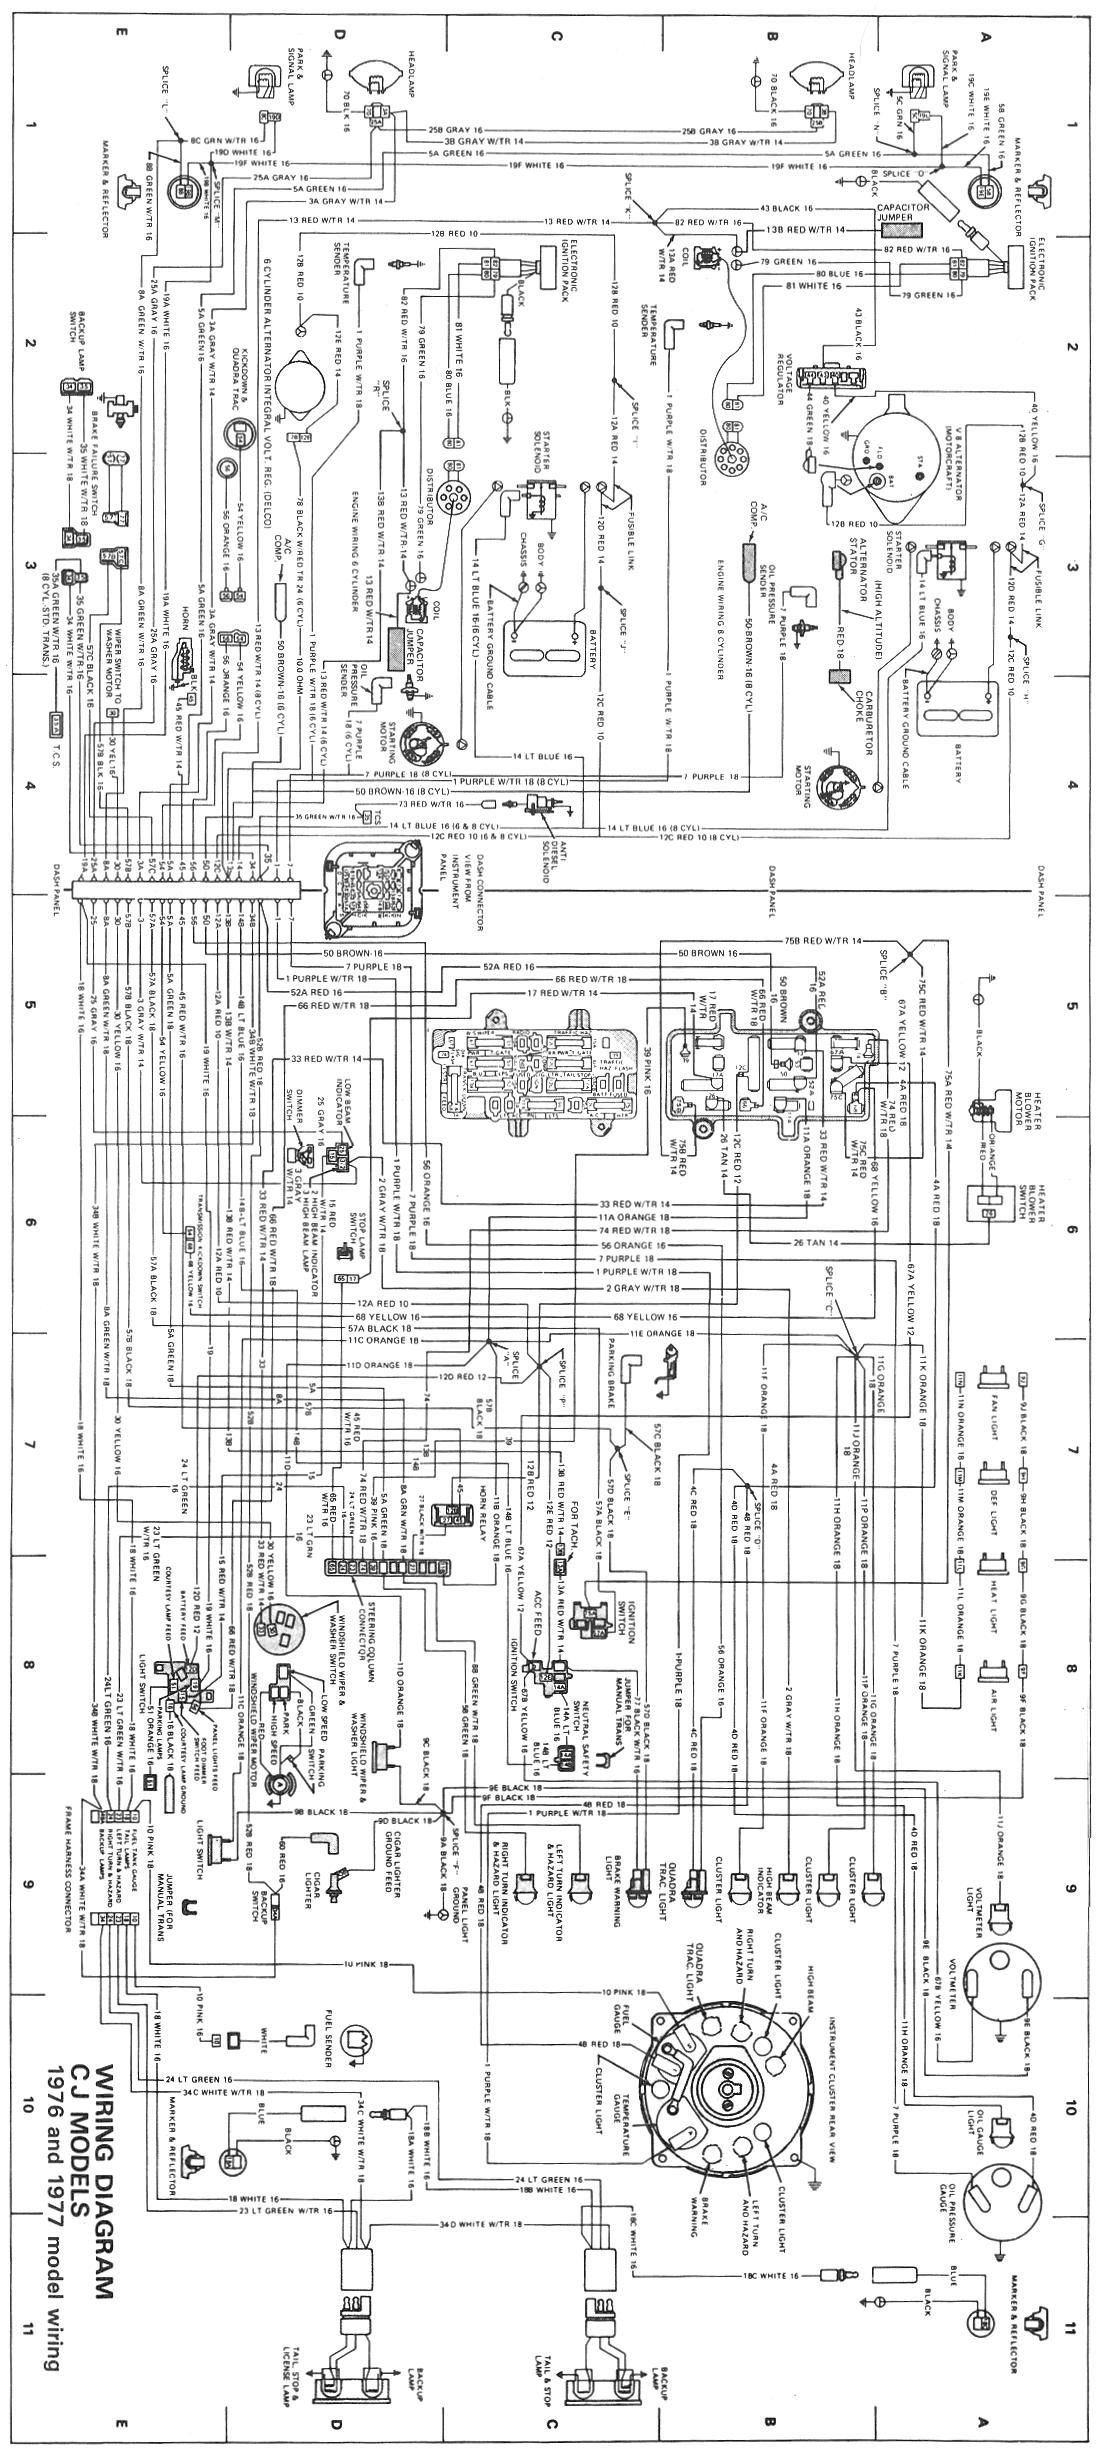 small resolution of jeep wiring diagrams 1976 and 1977 cj jeep wiring pinterest 1974 jeep cj5 wiring diagram jeep cj5 wiring schematic